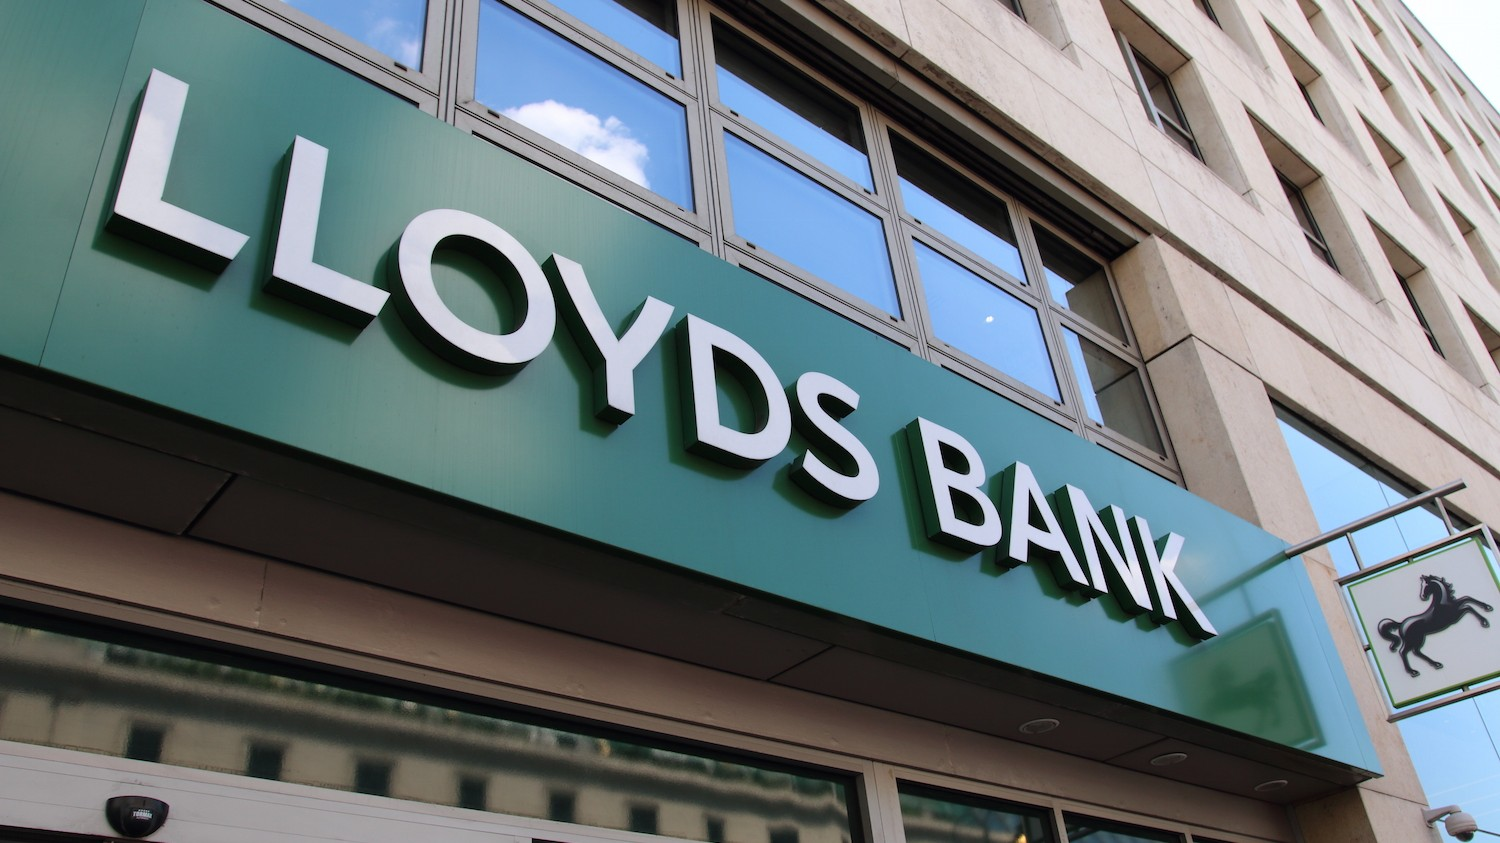 Hacker Says He Attempted to Extort UK Bank Lloyds With DDoS